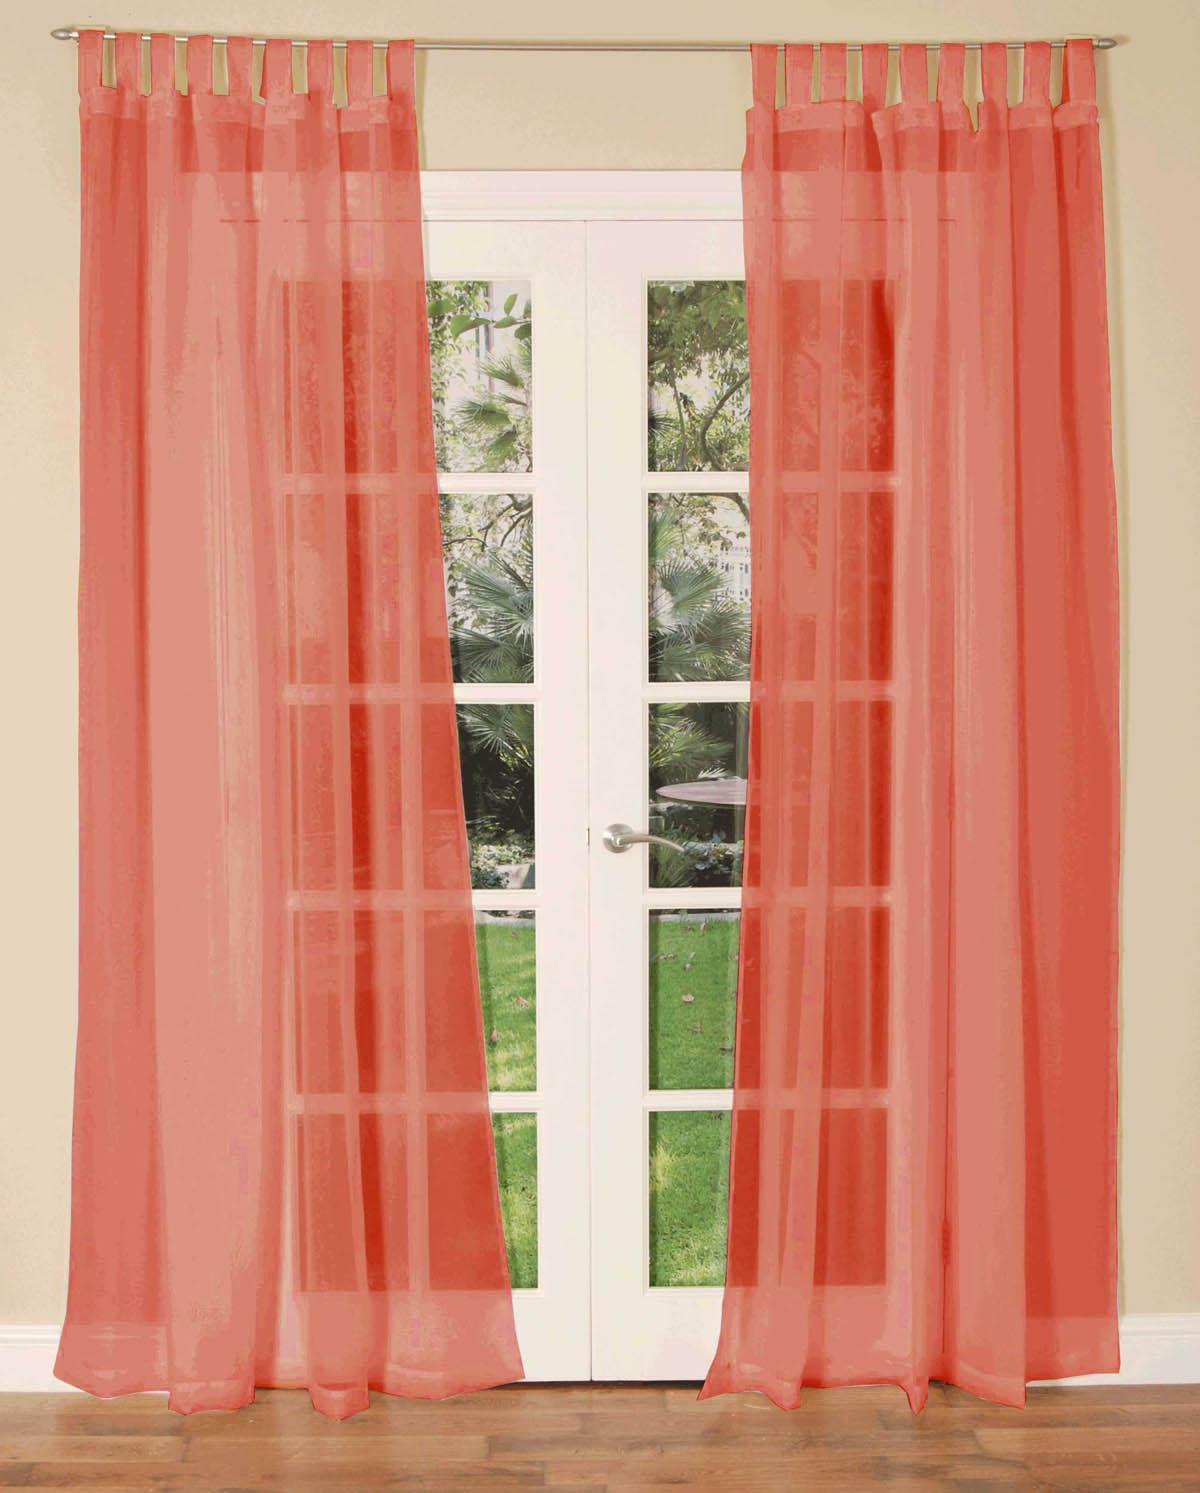 Voile Curtains Home Design Ideas And Pictures